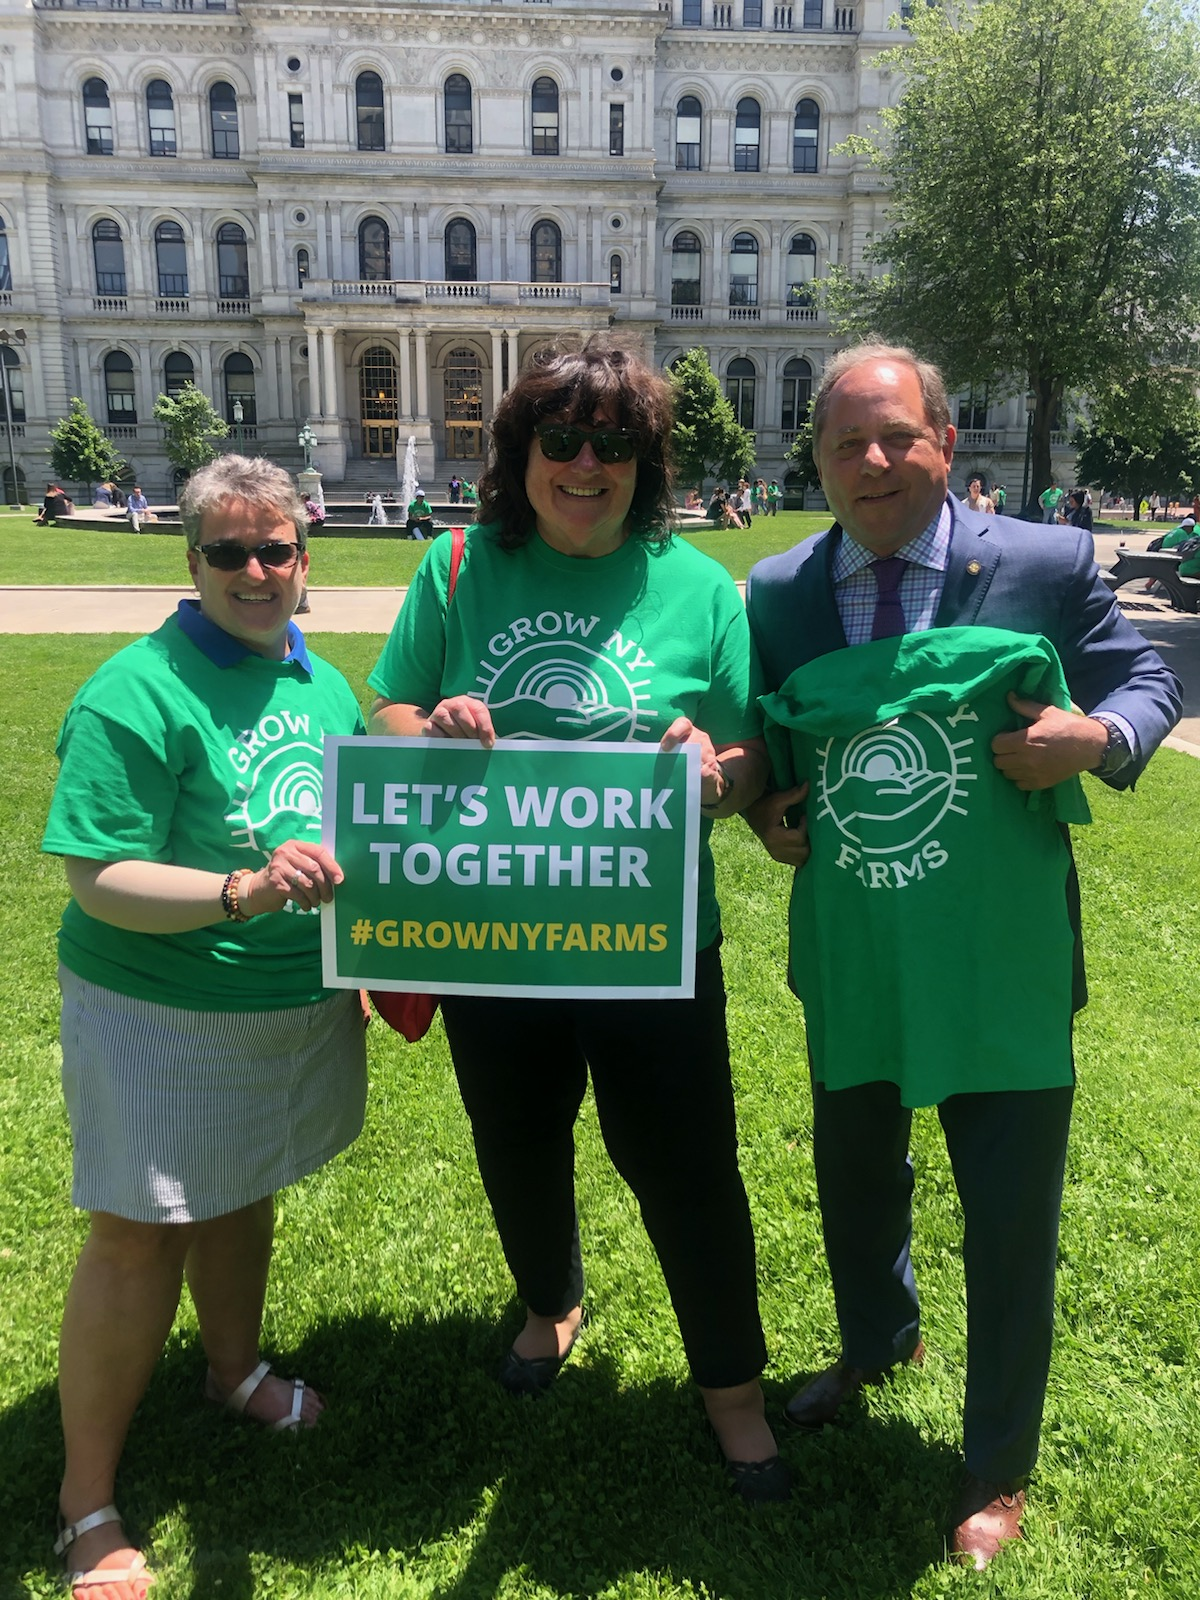 Assemblyman Steve Hawley (R,C,I-Batavia) [far right] meets with Maureen Torrey and Shelley Stein from Grow-NY at Wednesday's New York Farm Bureau Rally in Albany.